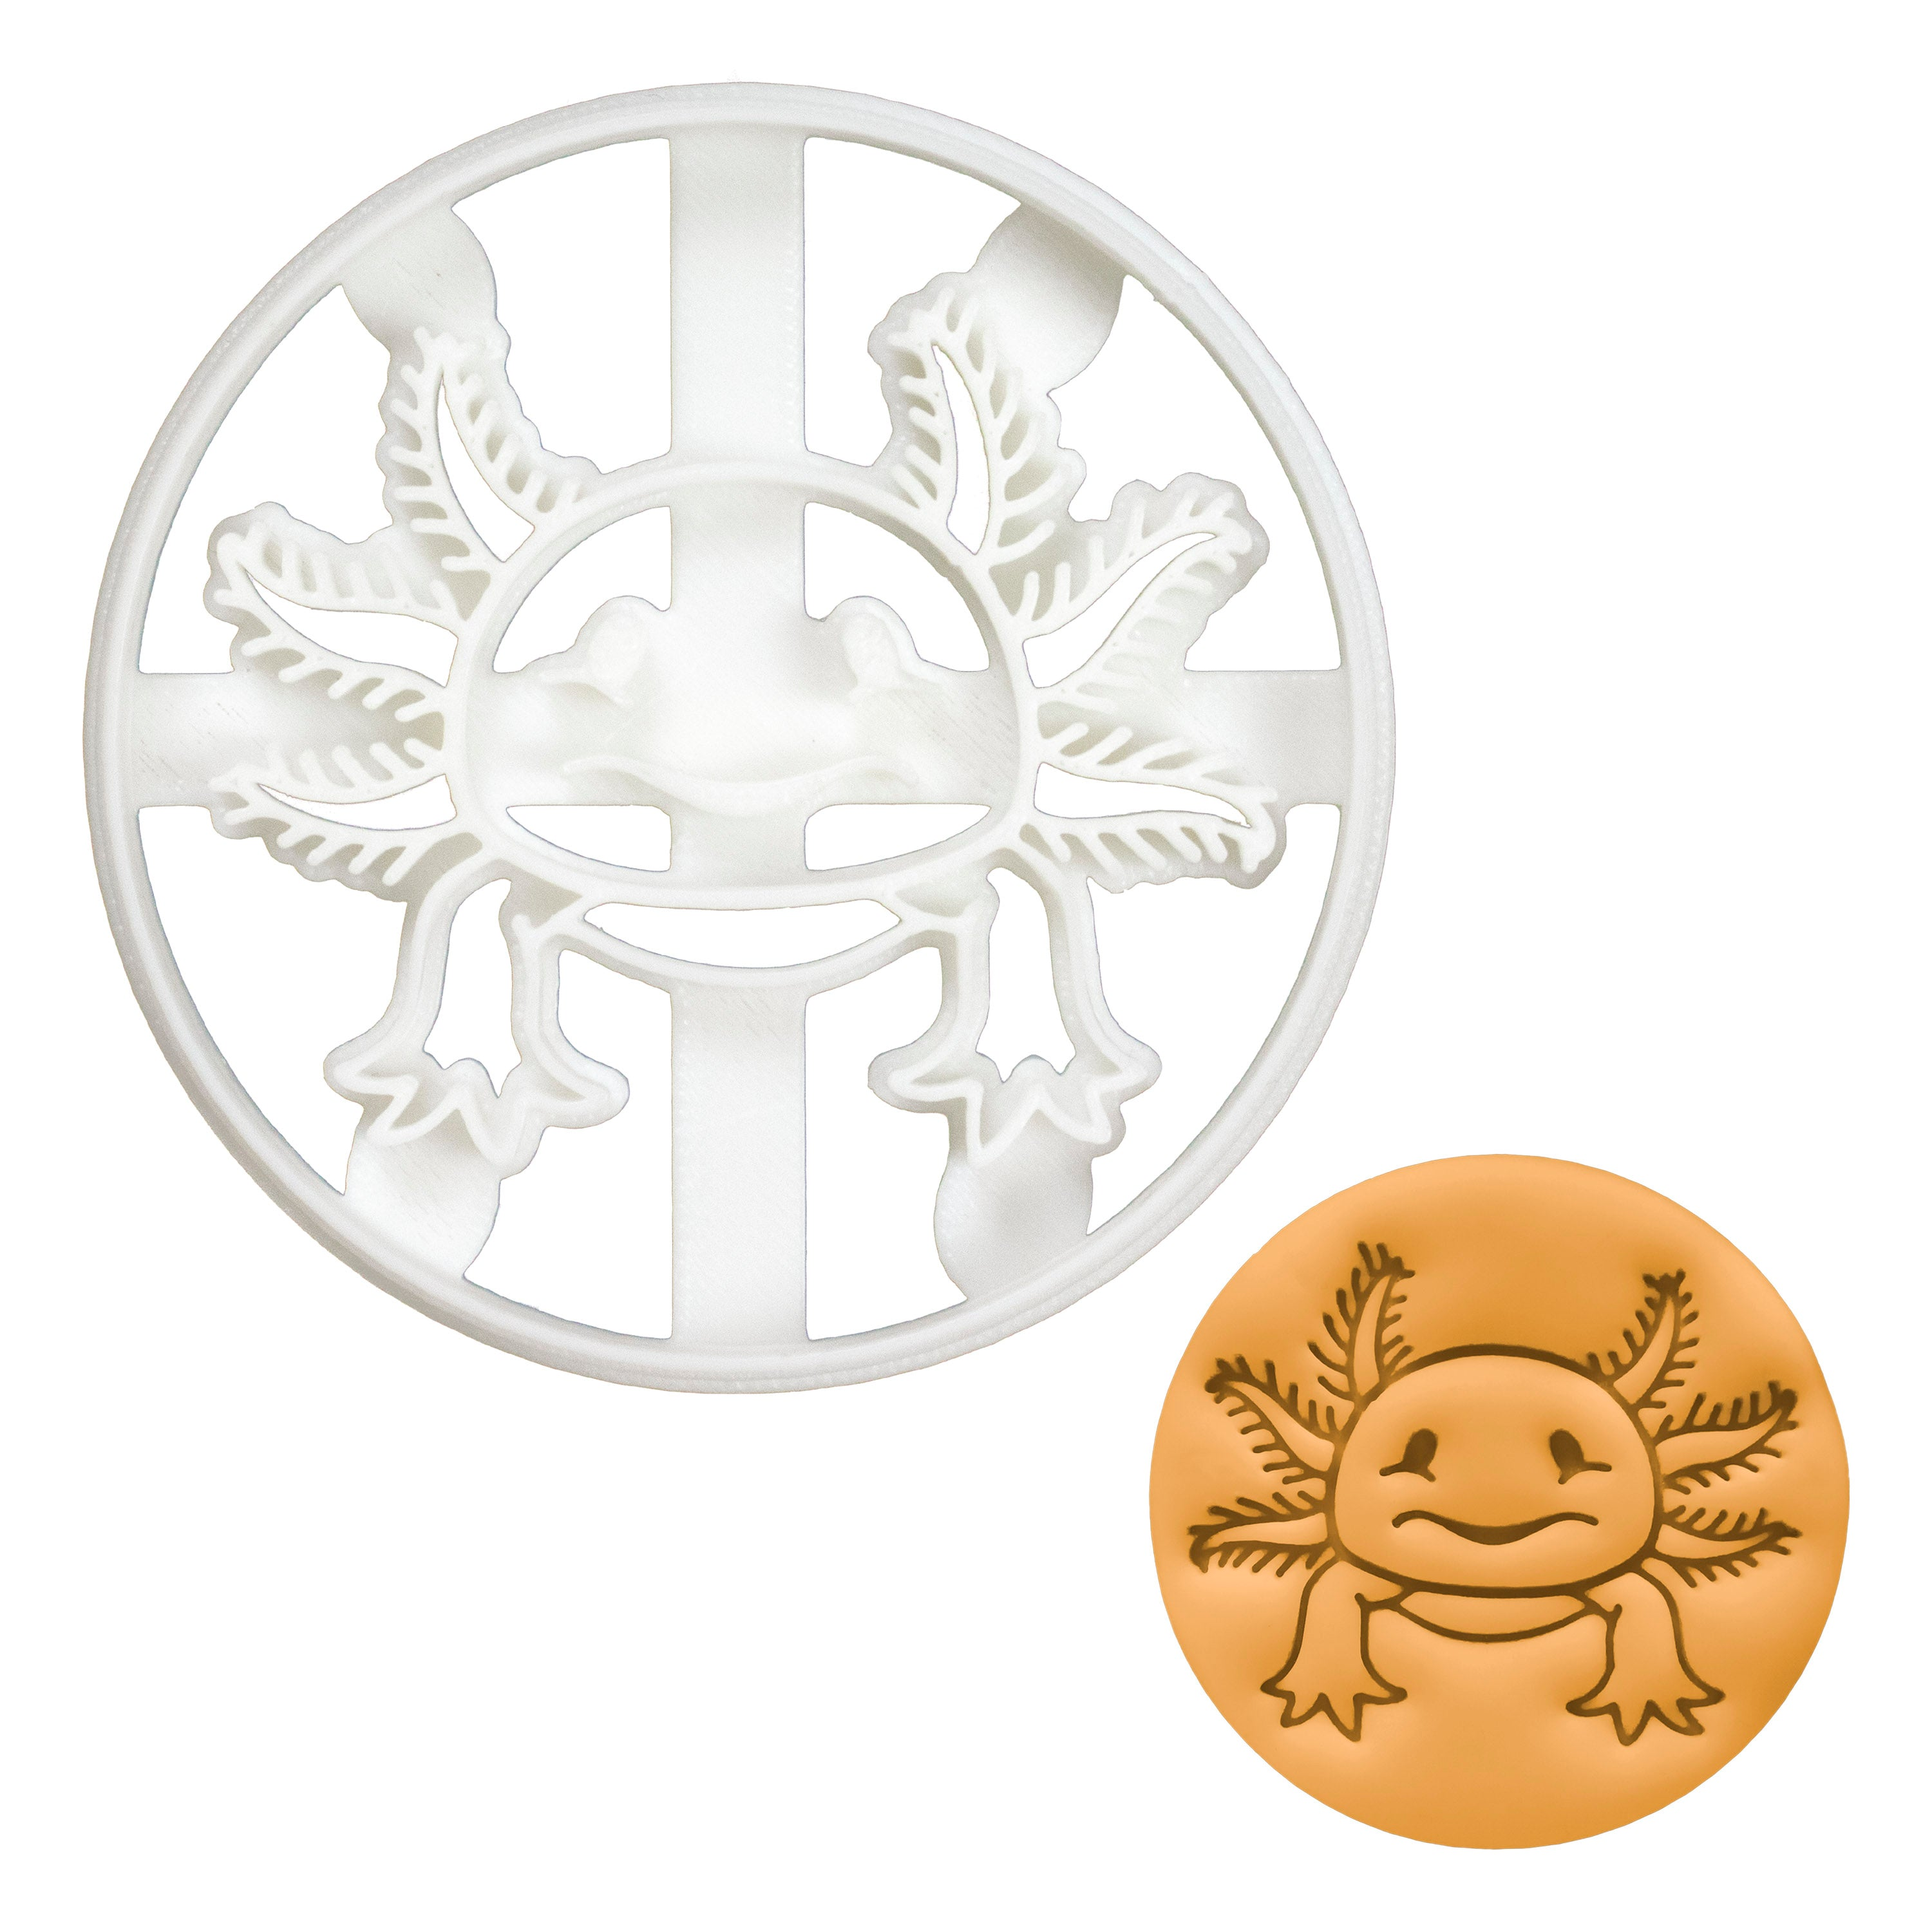 Realistic Axolotl cookie cutter